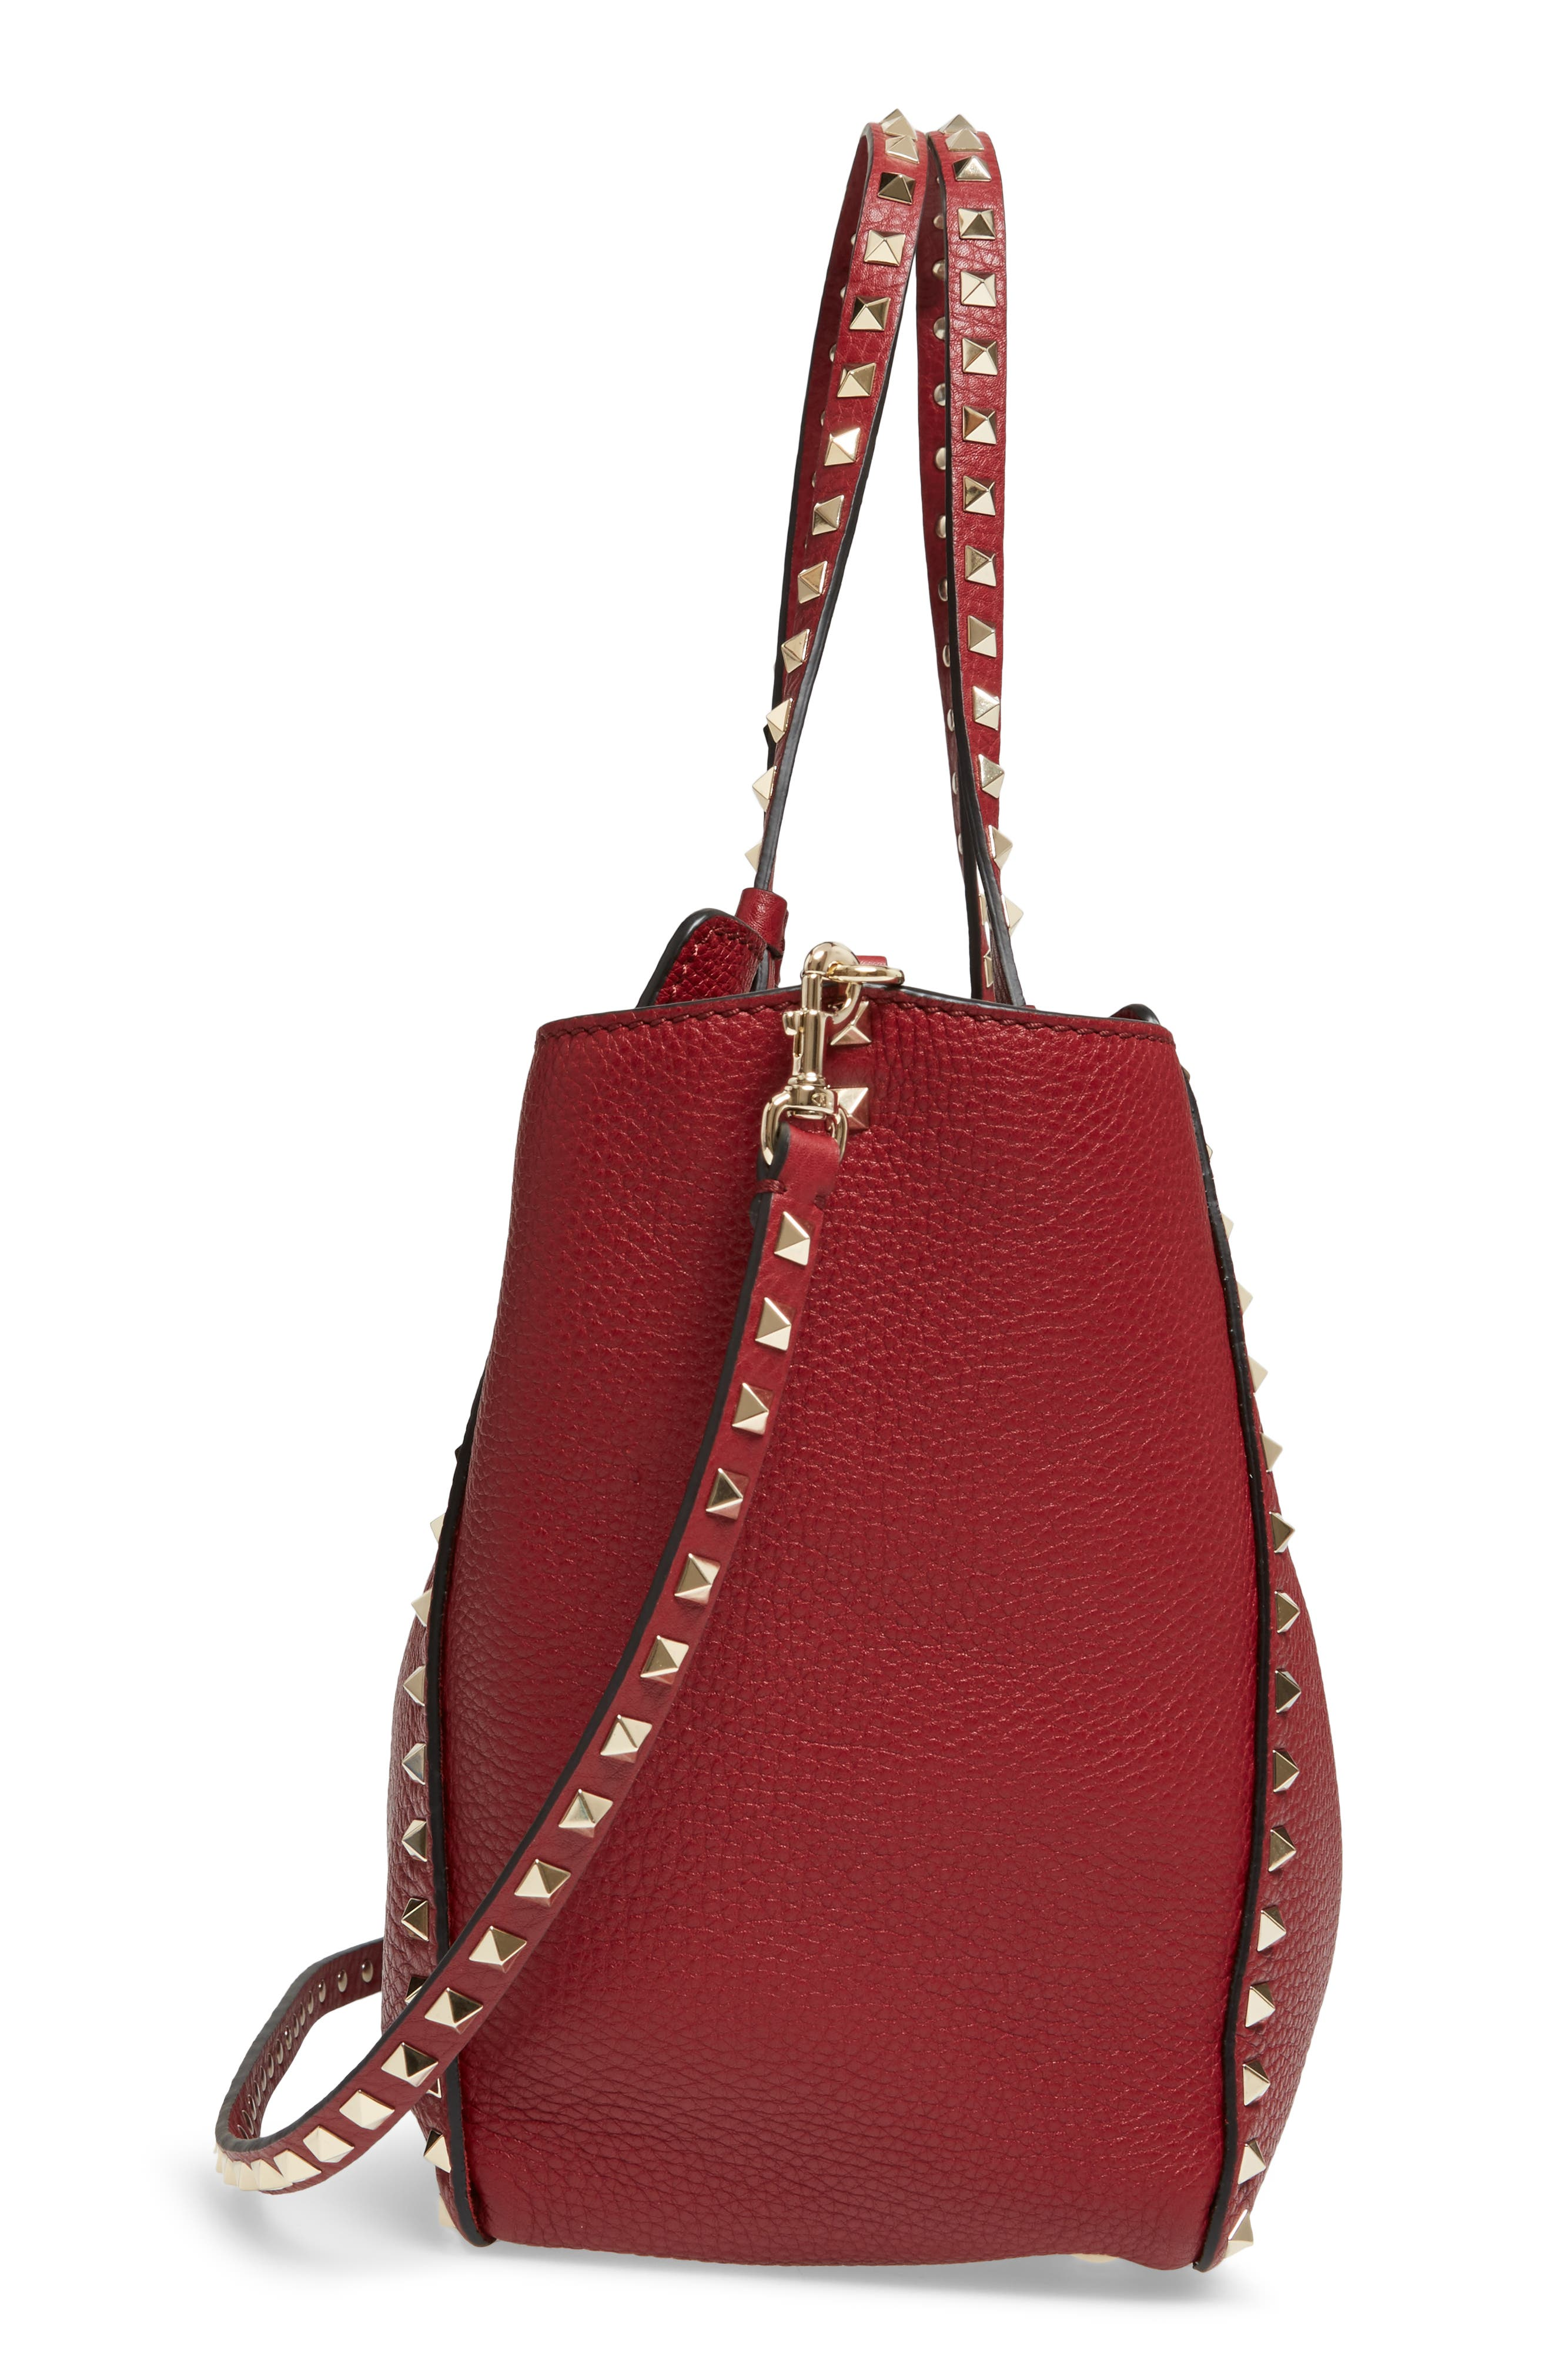 Medium Rockstud Grained Calfskin Leather Tote,                             Alternate thumbnail 5, color,                             930